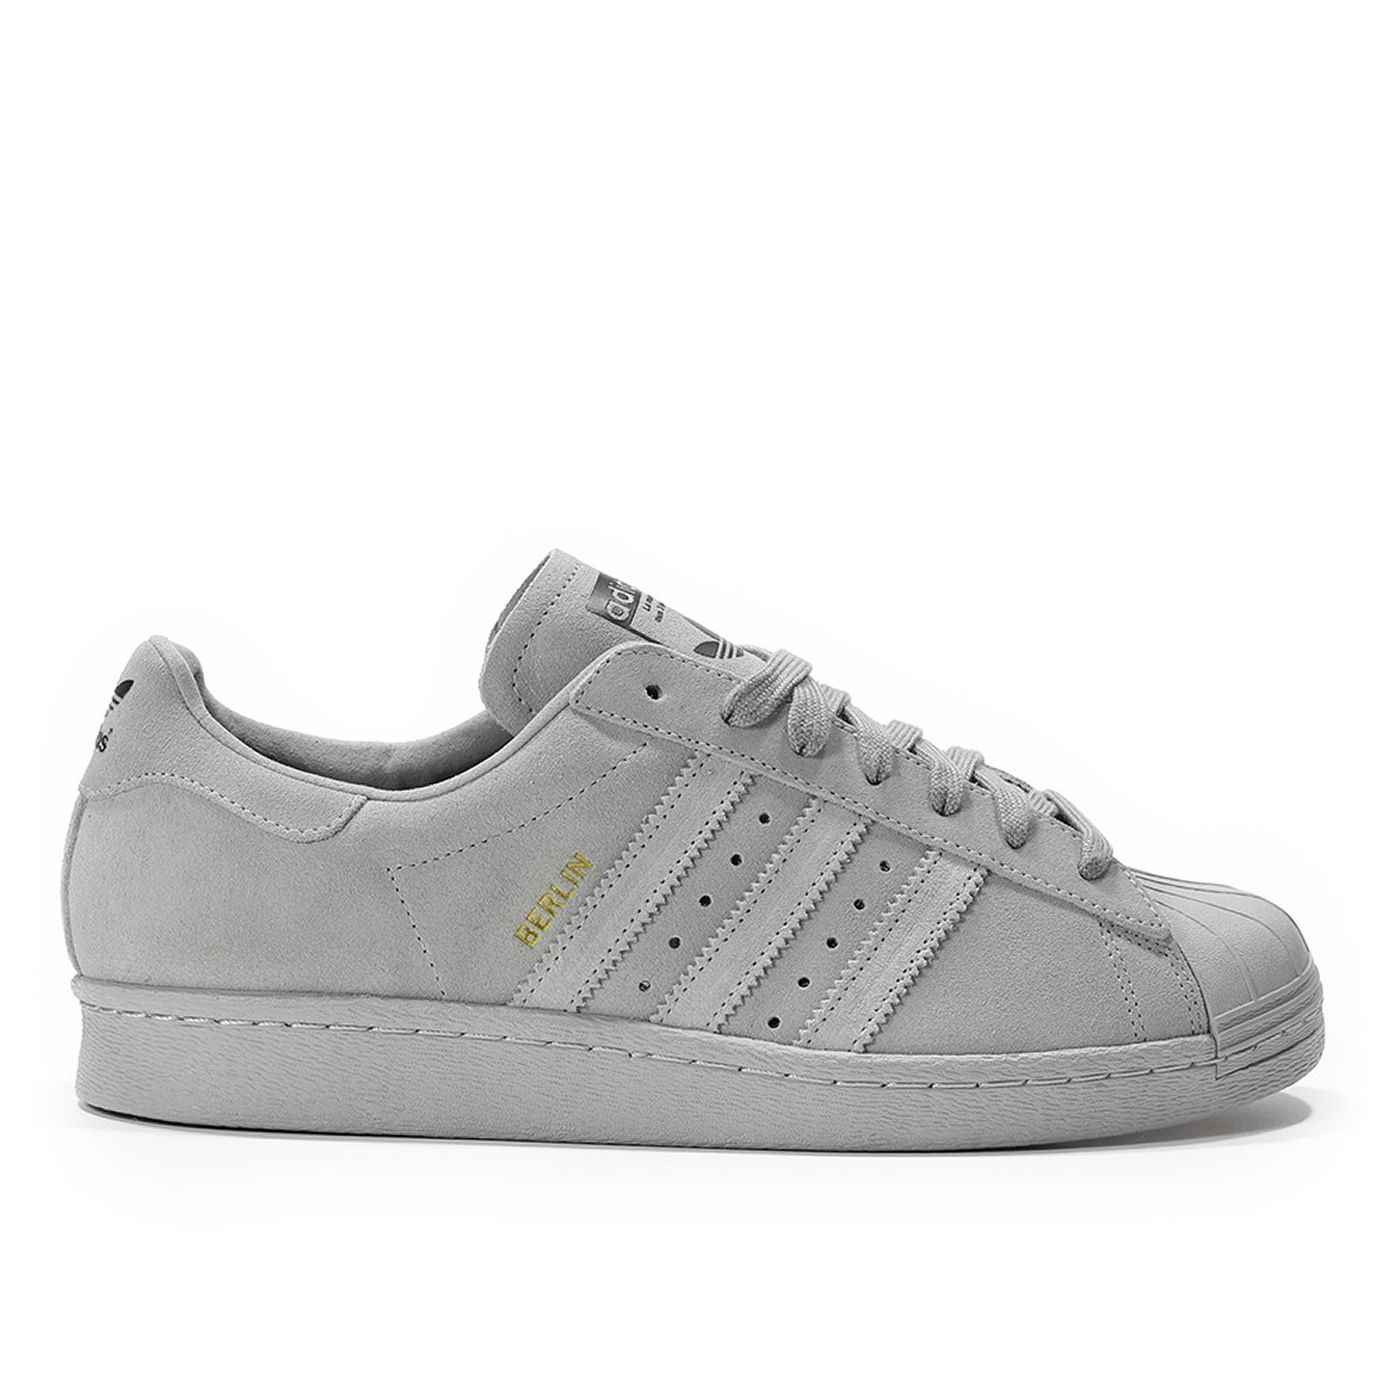 adidas Superstar 80s City Series \u0027Berlin\u0027 Grau - UEBERVART. Grey  FashionFashion OutfitsFasionAdidas SuperstarNike Shoes OutletAdidas  ShoesNike TrainersWoman ...